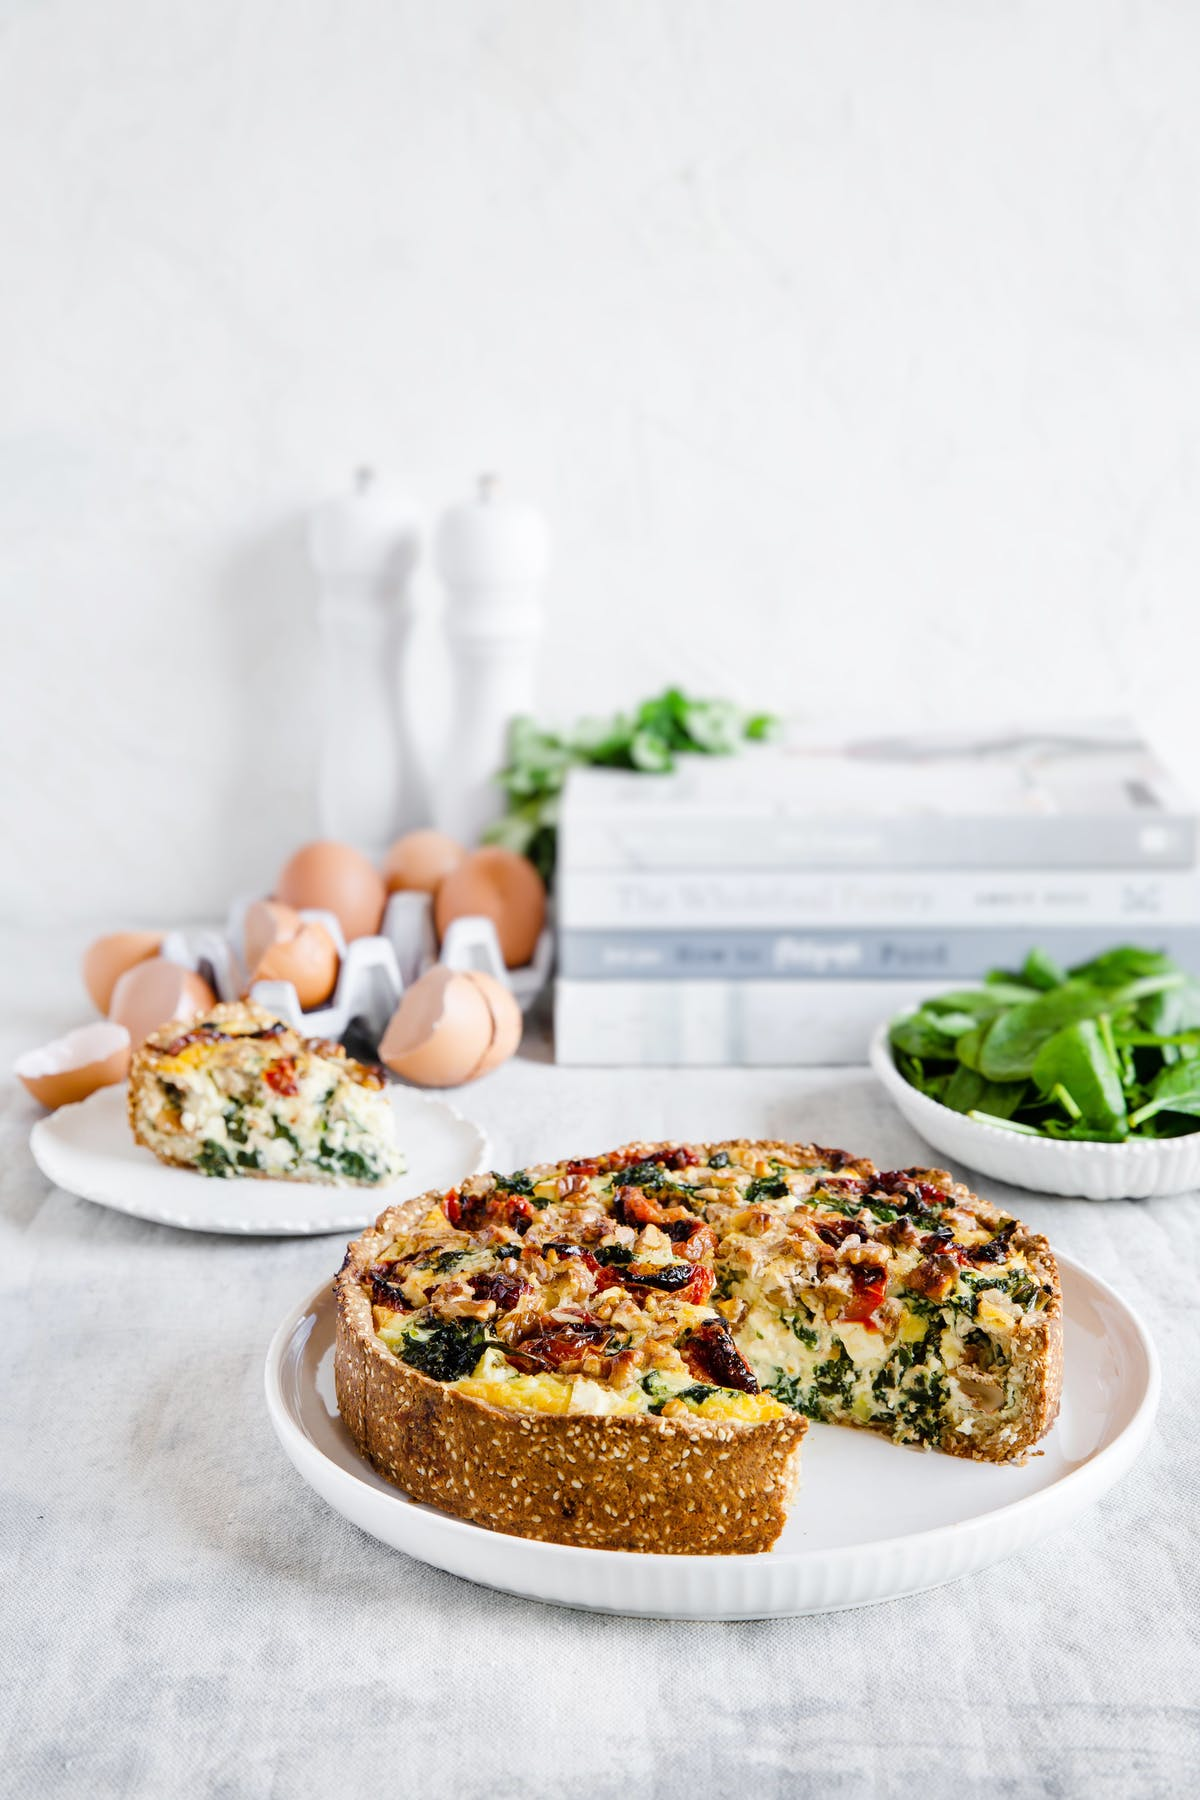 Vegetarian low-carb Christmas quiche